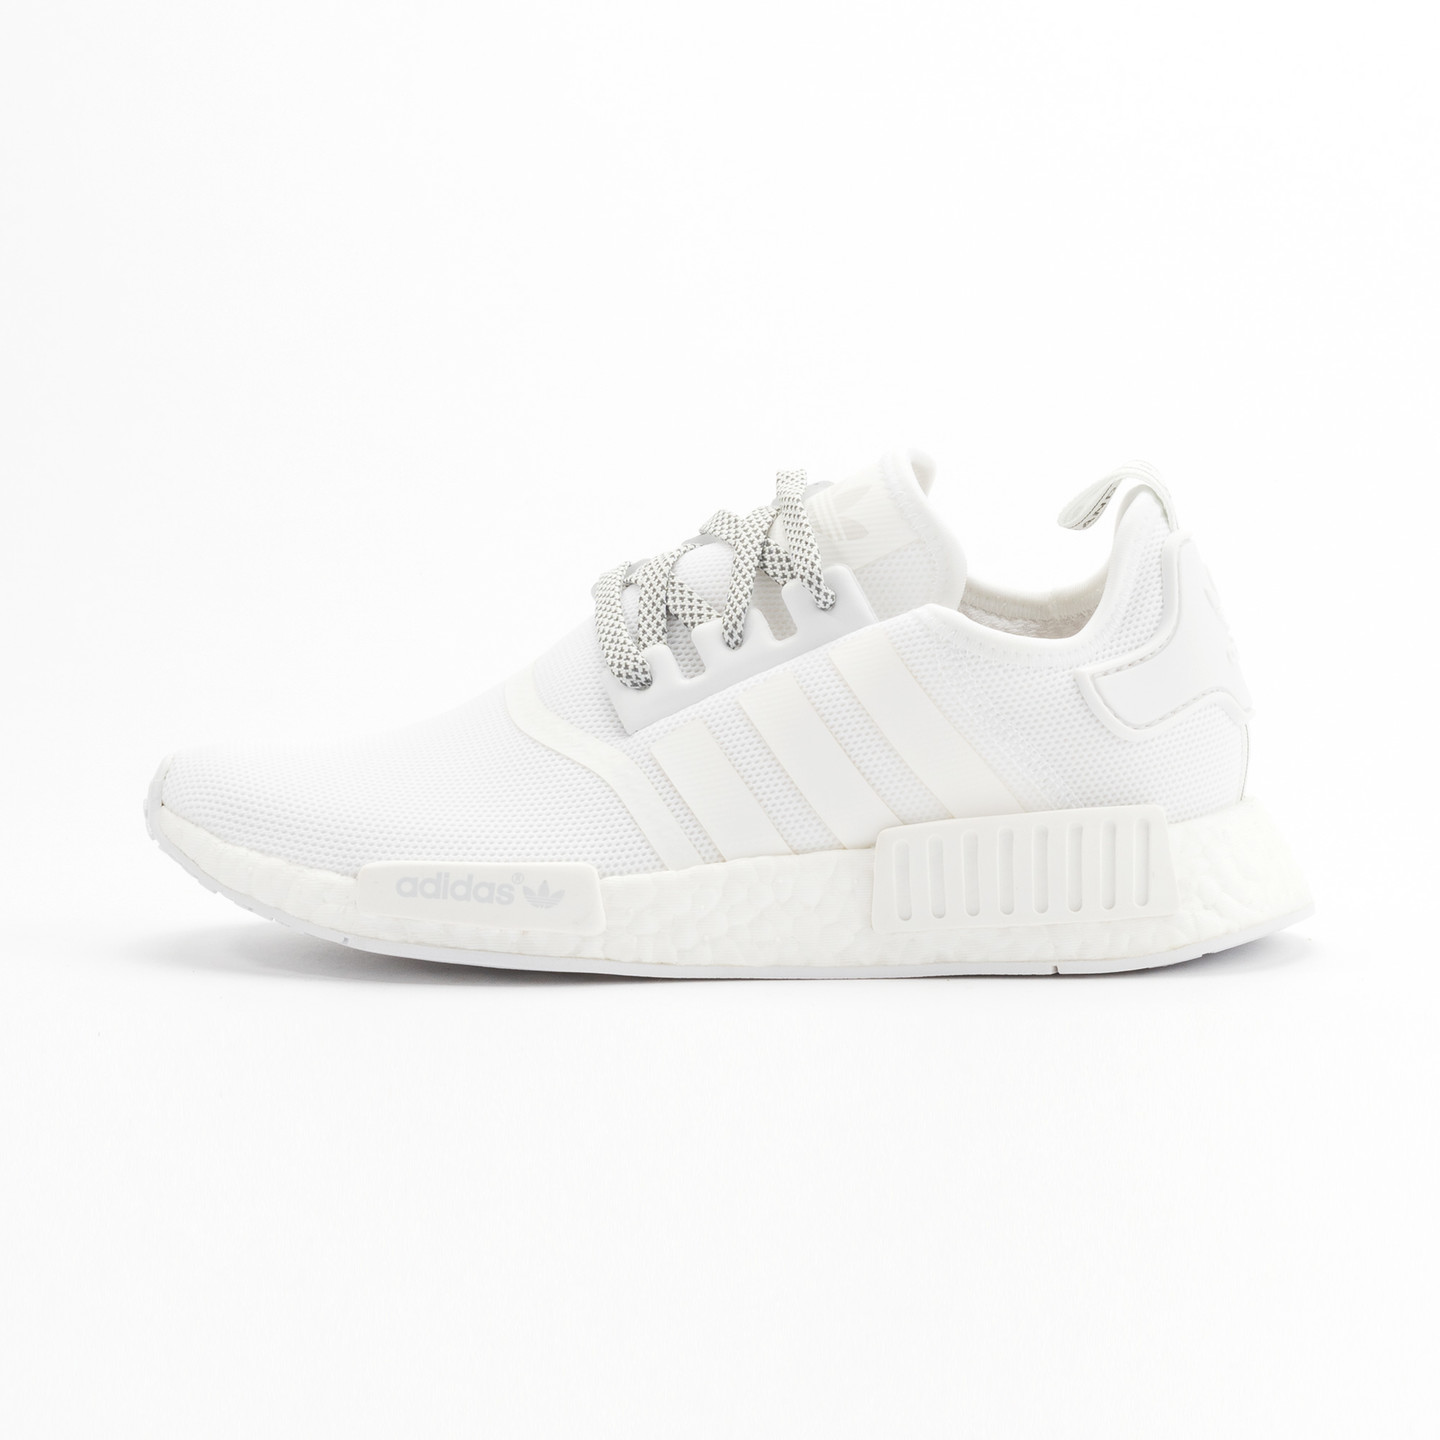 Adidas NMD R1 Runner Triple White S31506-44.66